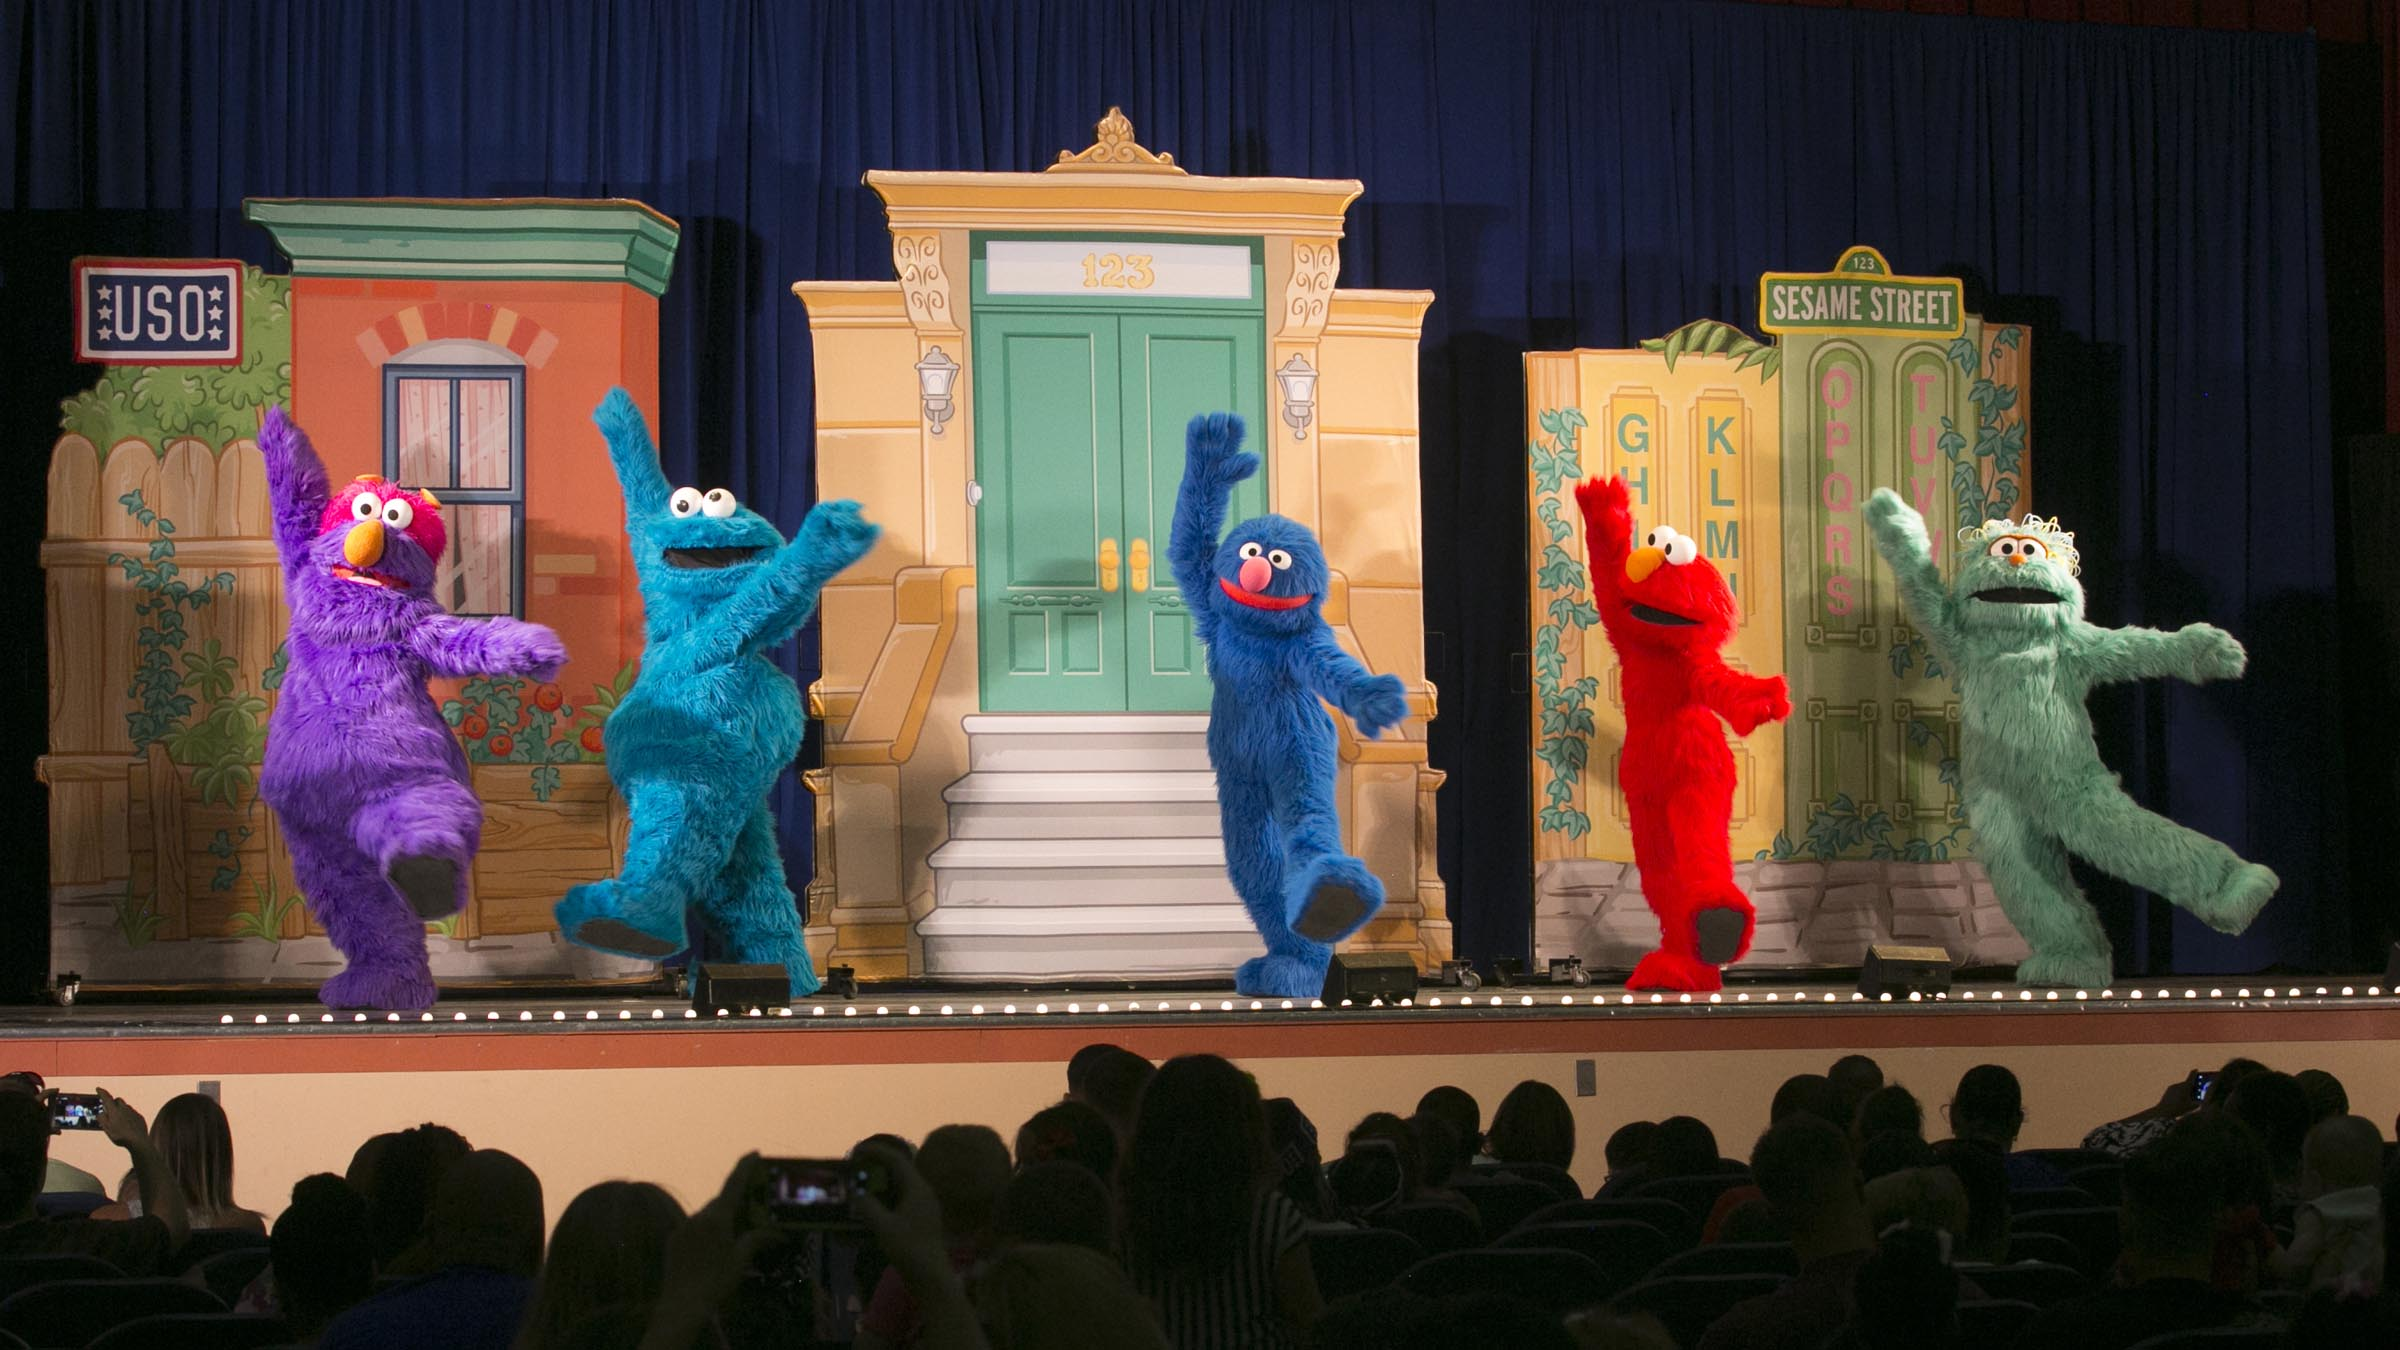 Sesame Street characters dance on stage